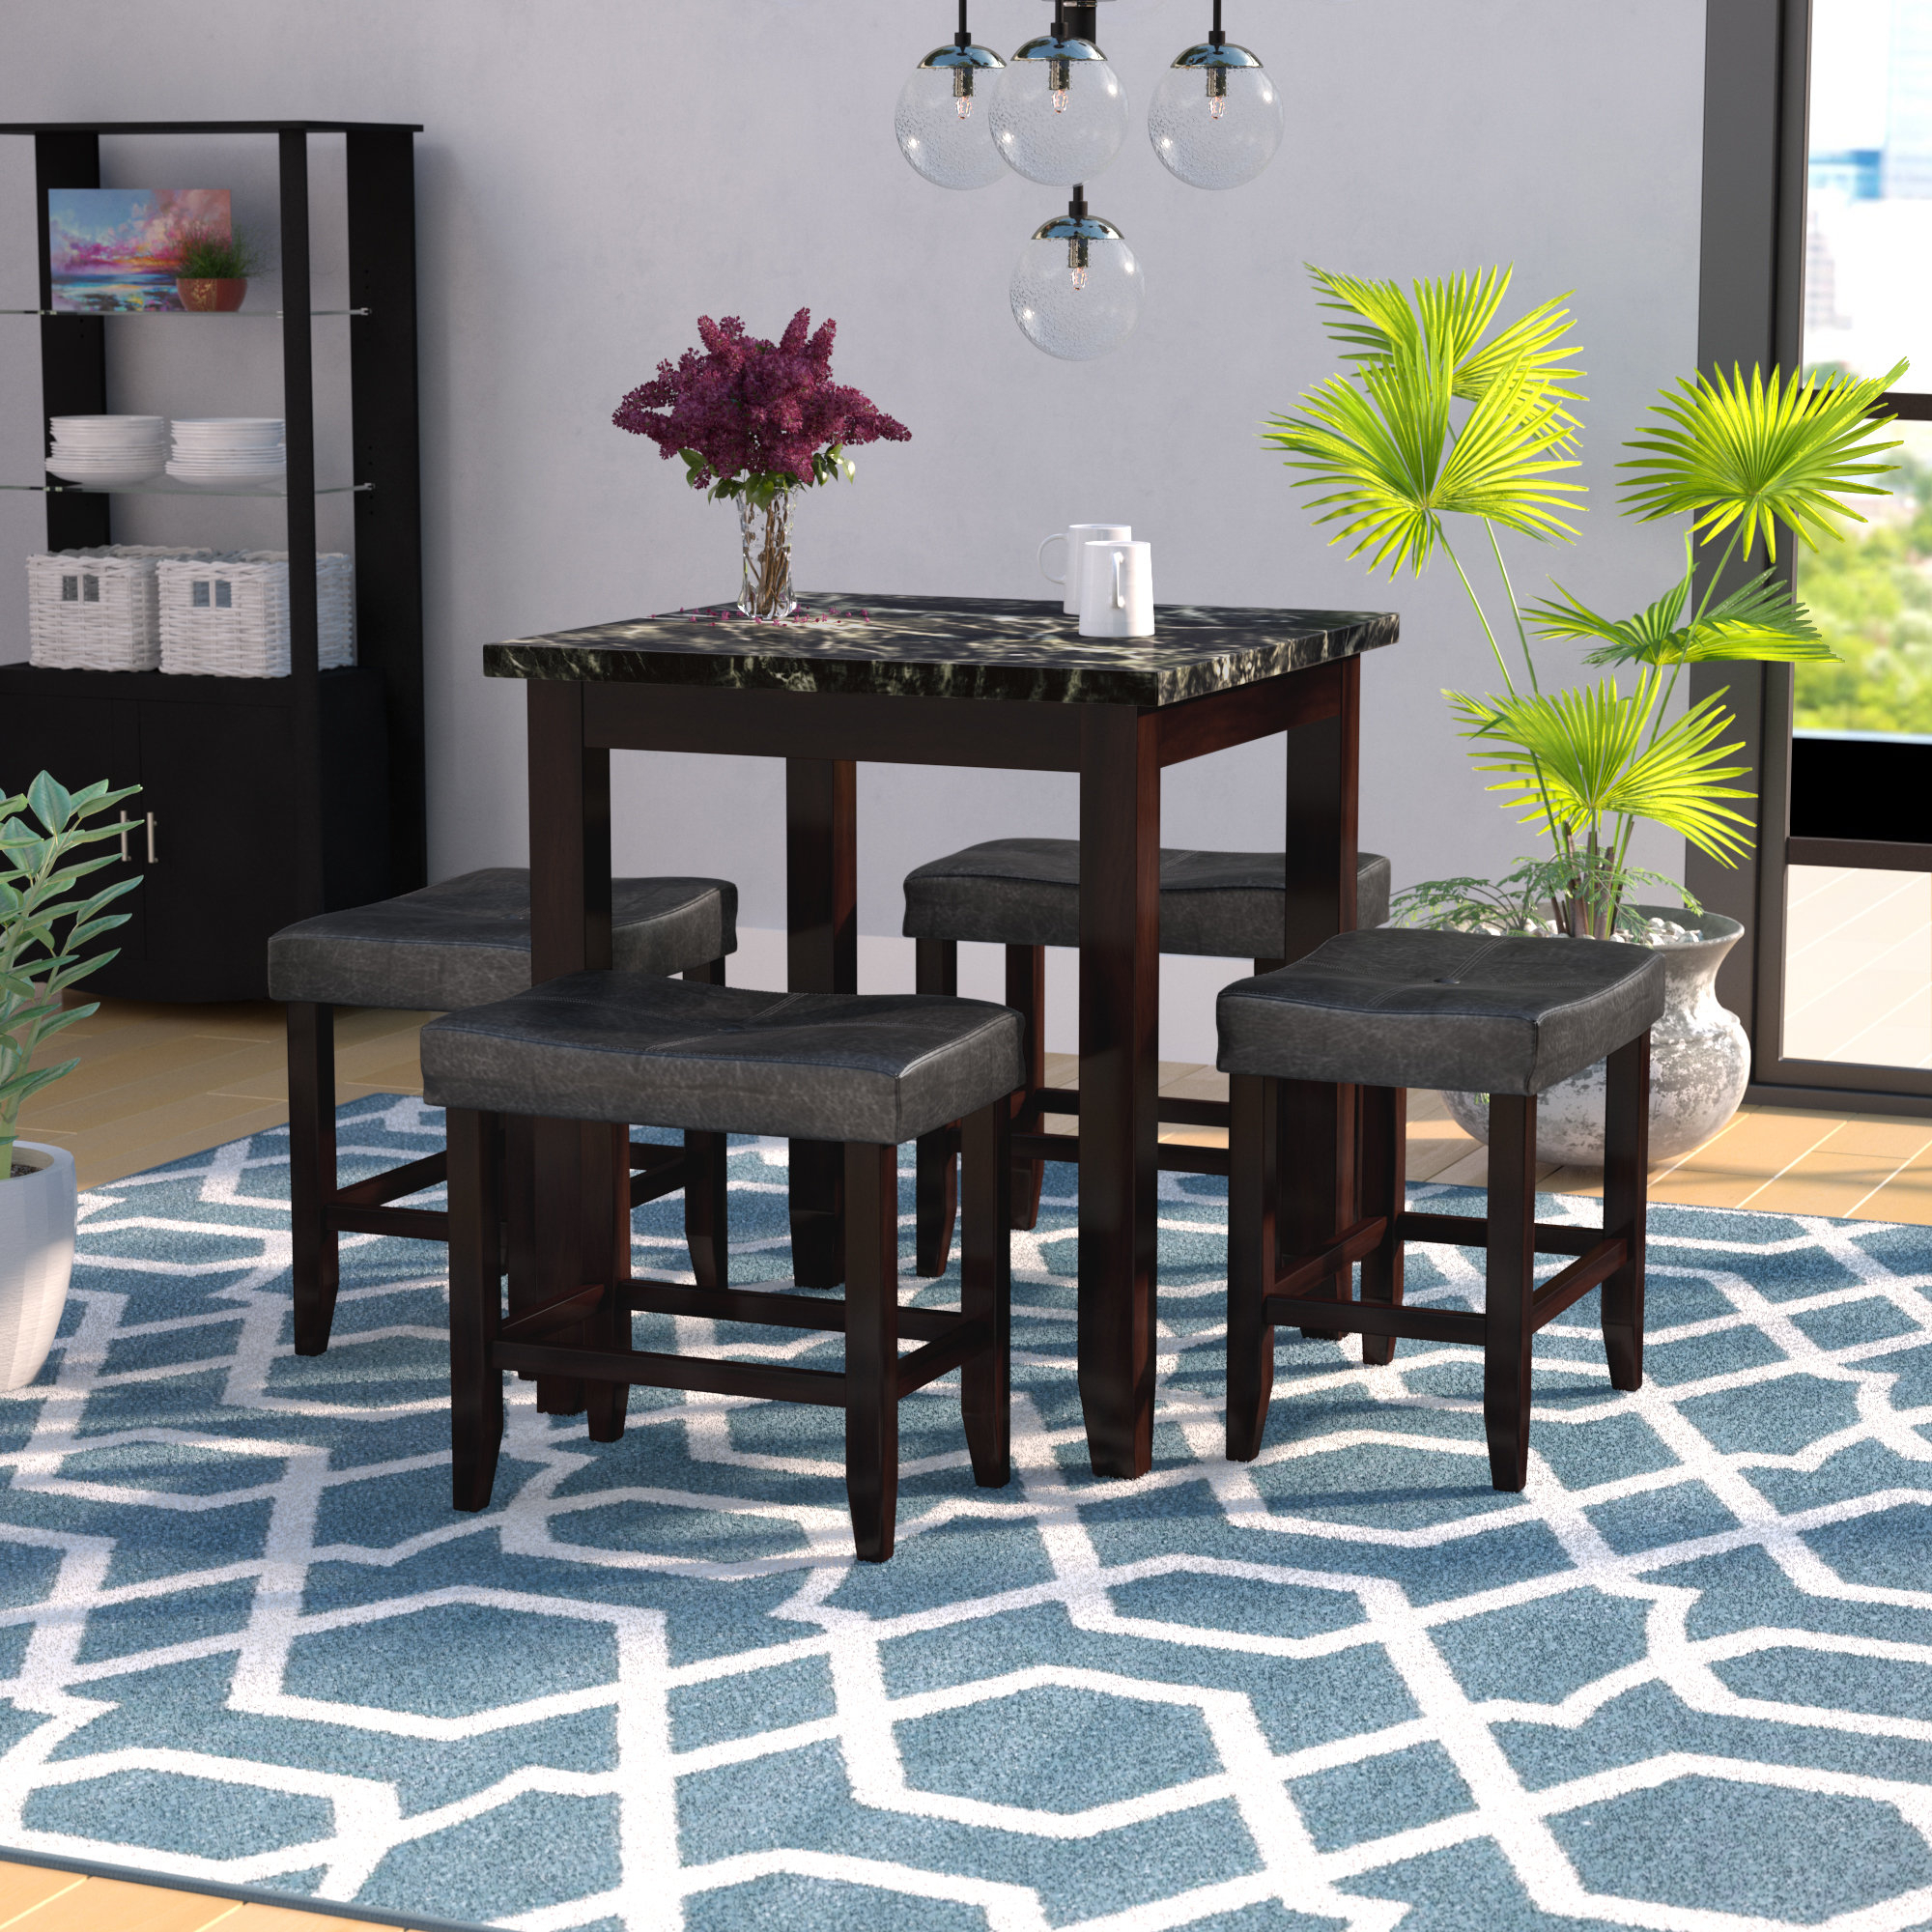 Dehaven 5 Piece Counter Height Dining Set Within Latest Miskell 3 Piece Dining Sets (Image 4 of 20)